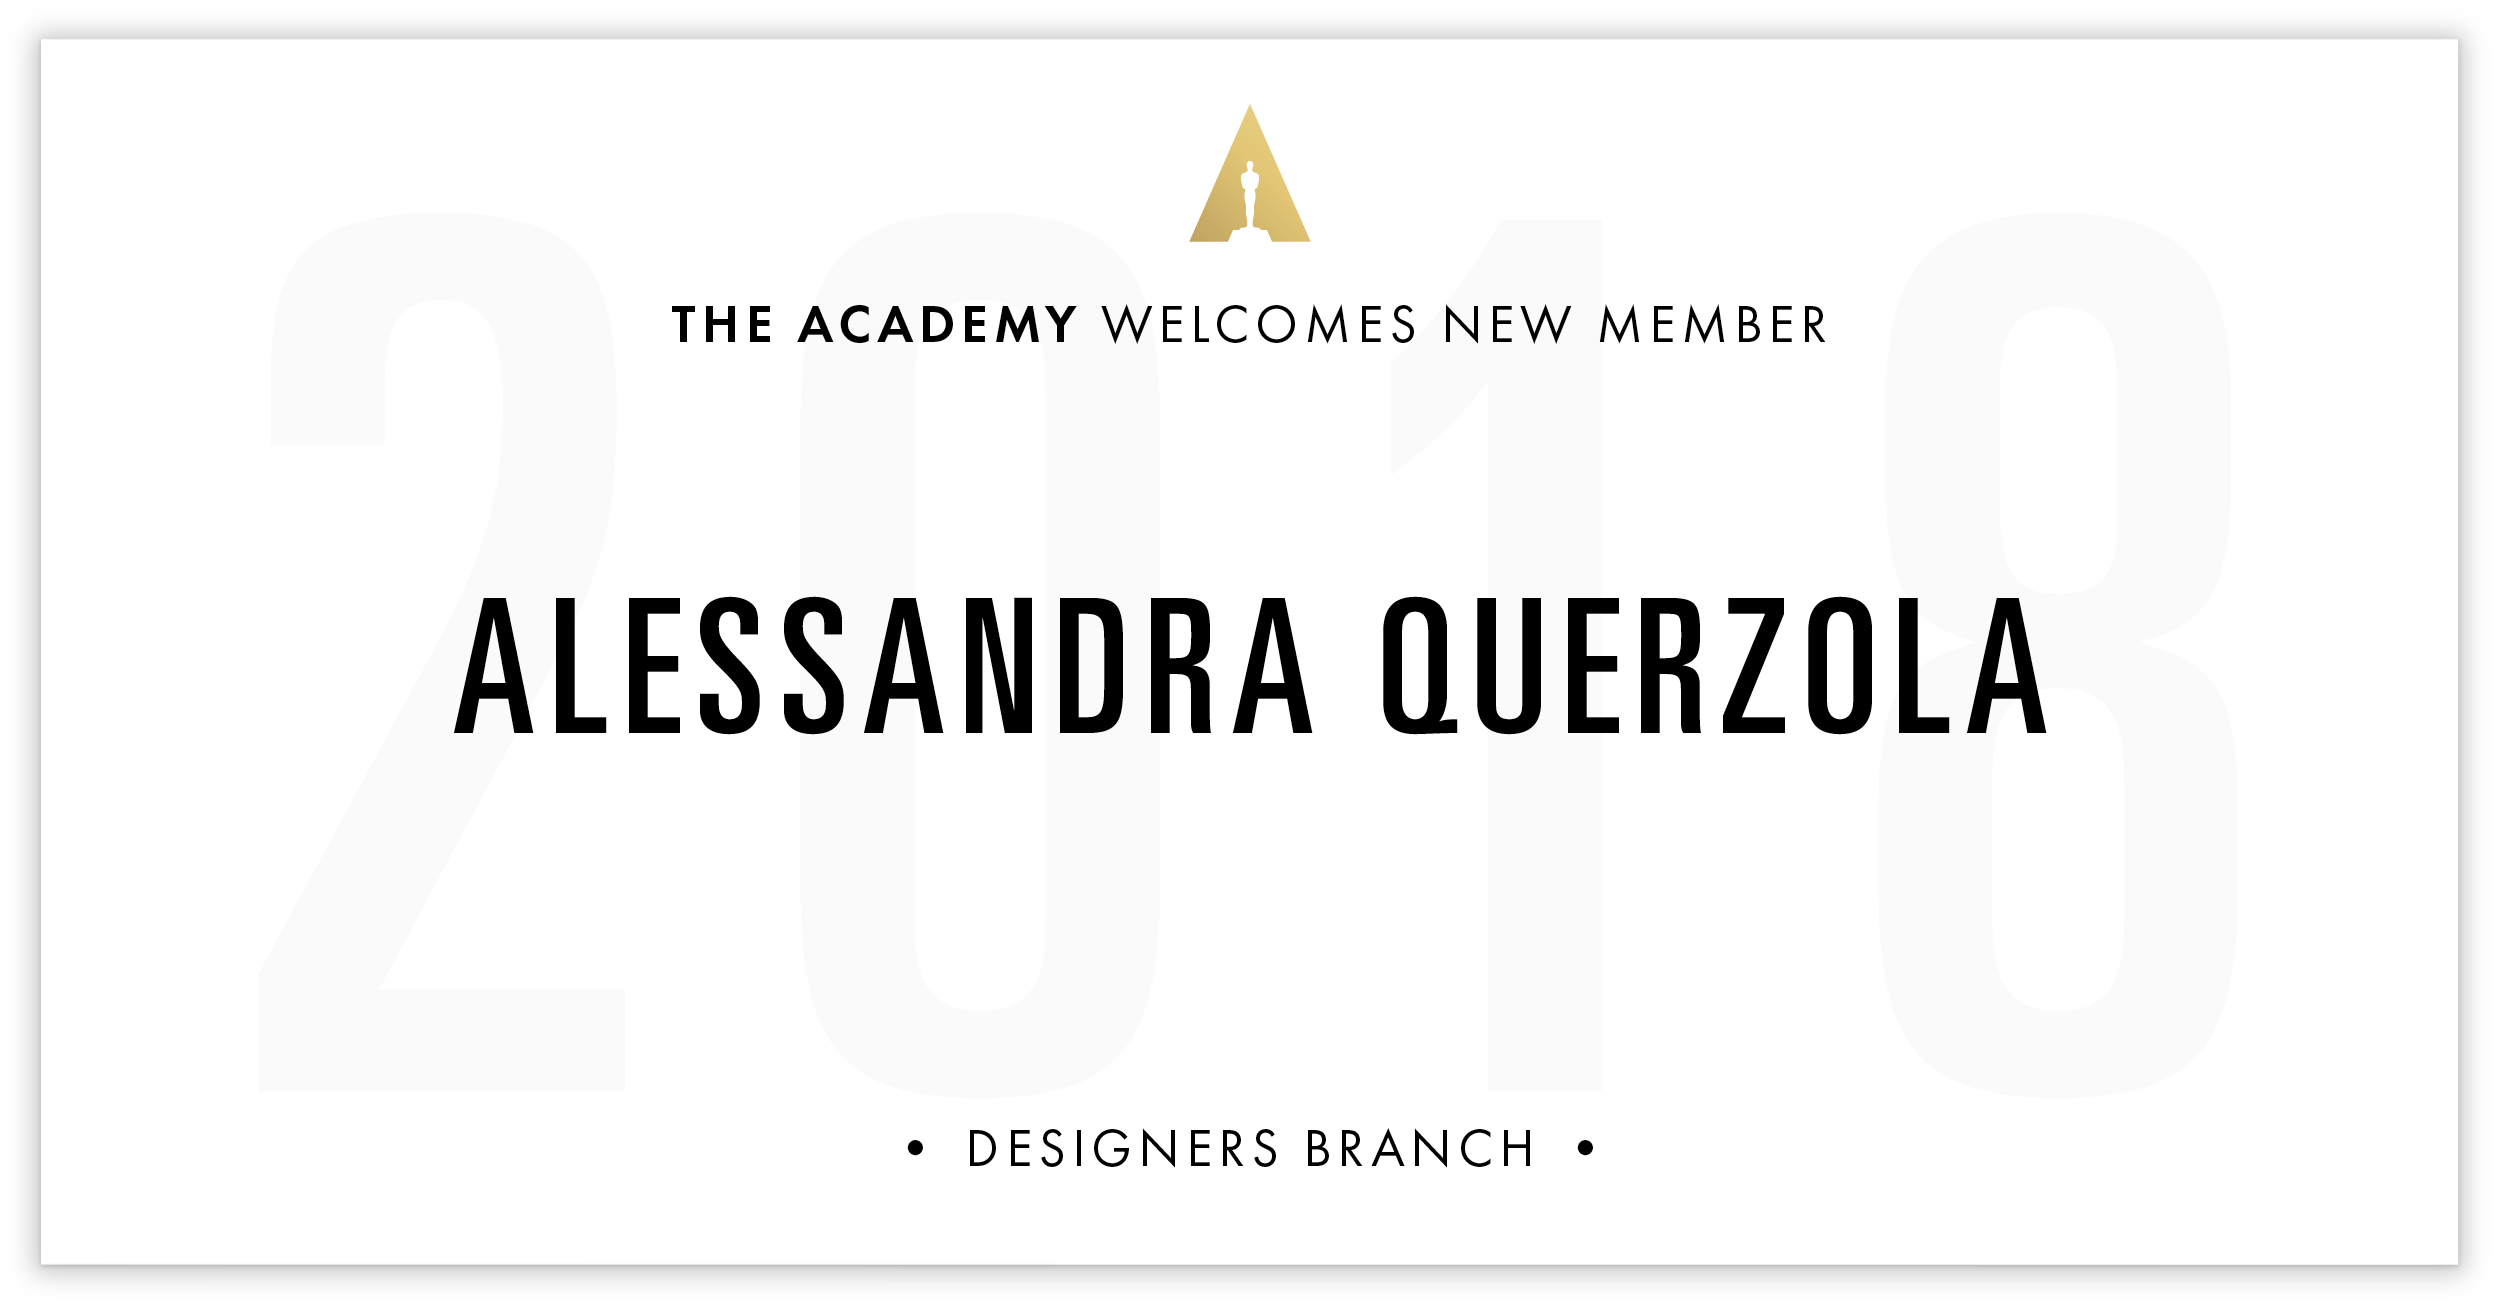 Alessandra Querzola is invited!